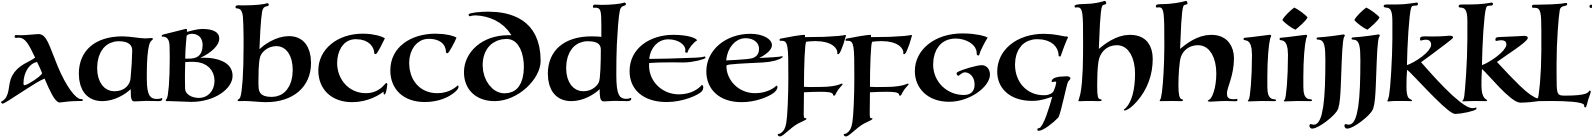 Testament I Medium Font